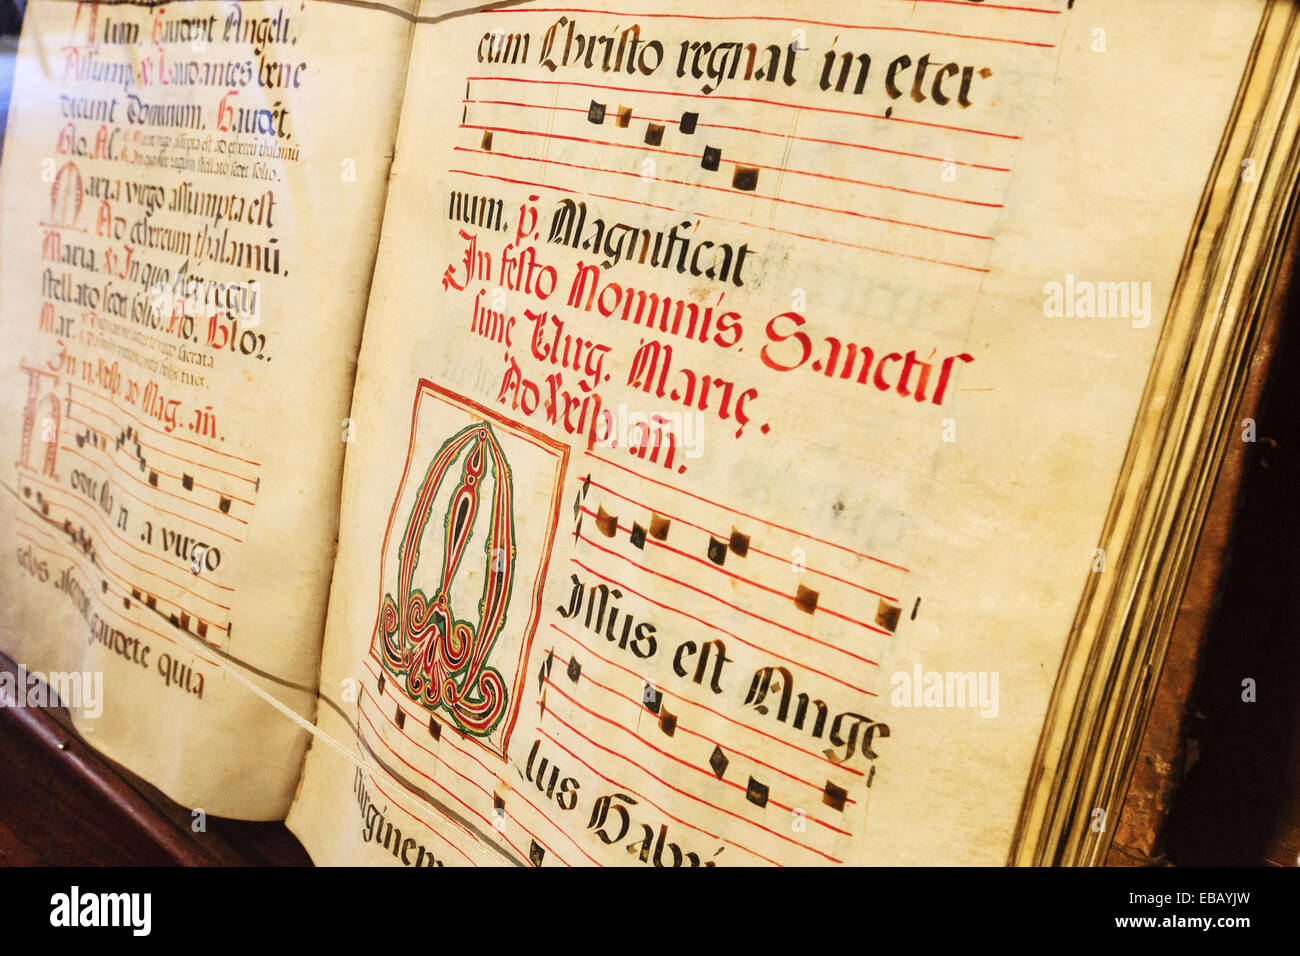 choir book, Gregorian chant on parchment, grammar room, Sanctuary of Our Lady of Cura, located in the Puig de Cura, - Stock Image